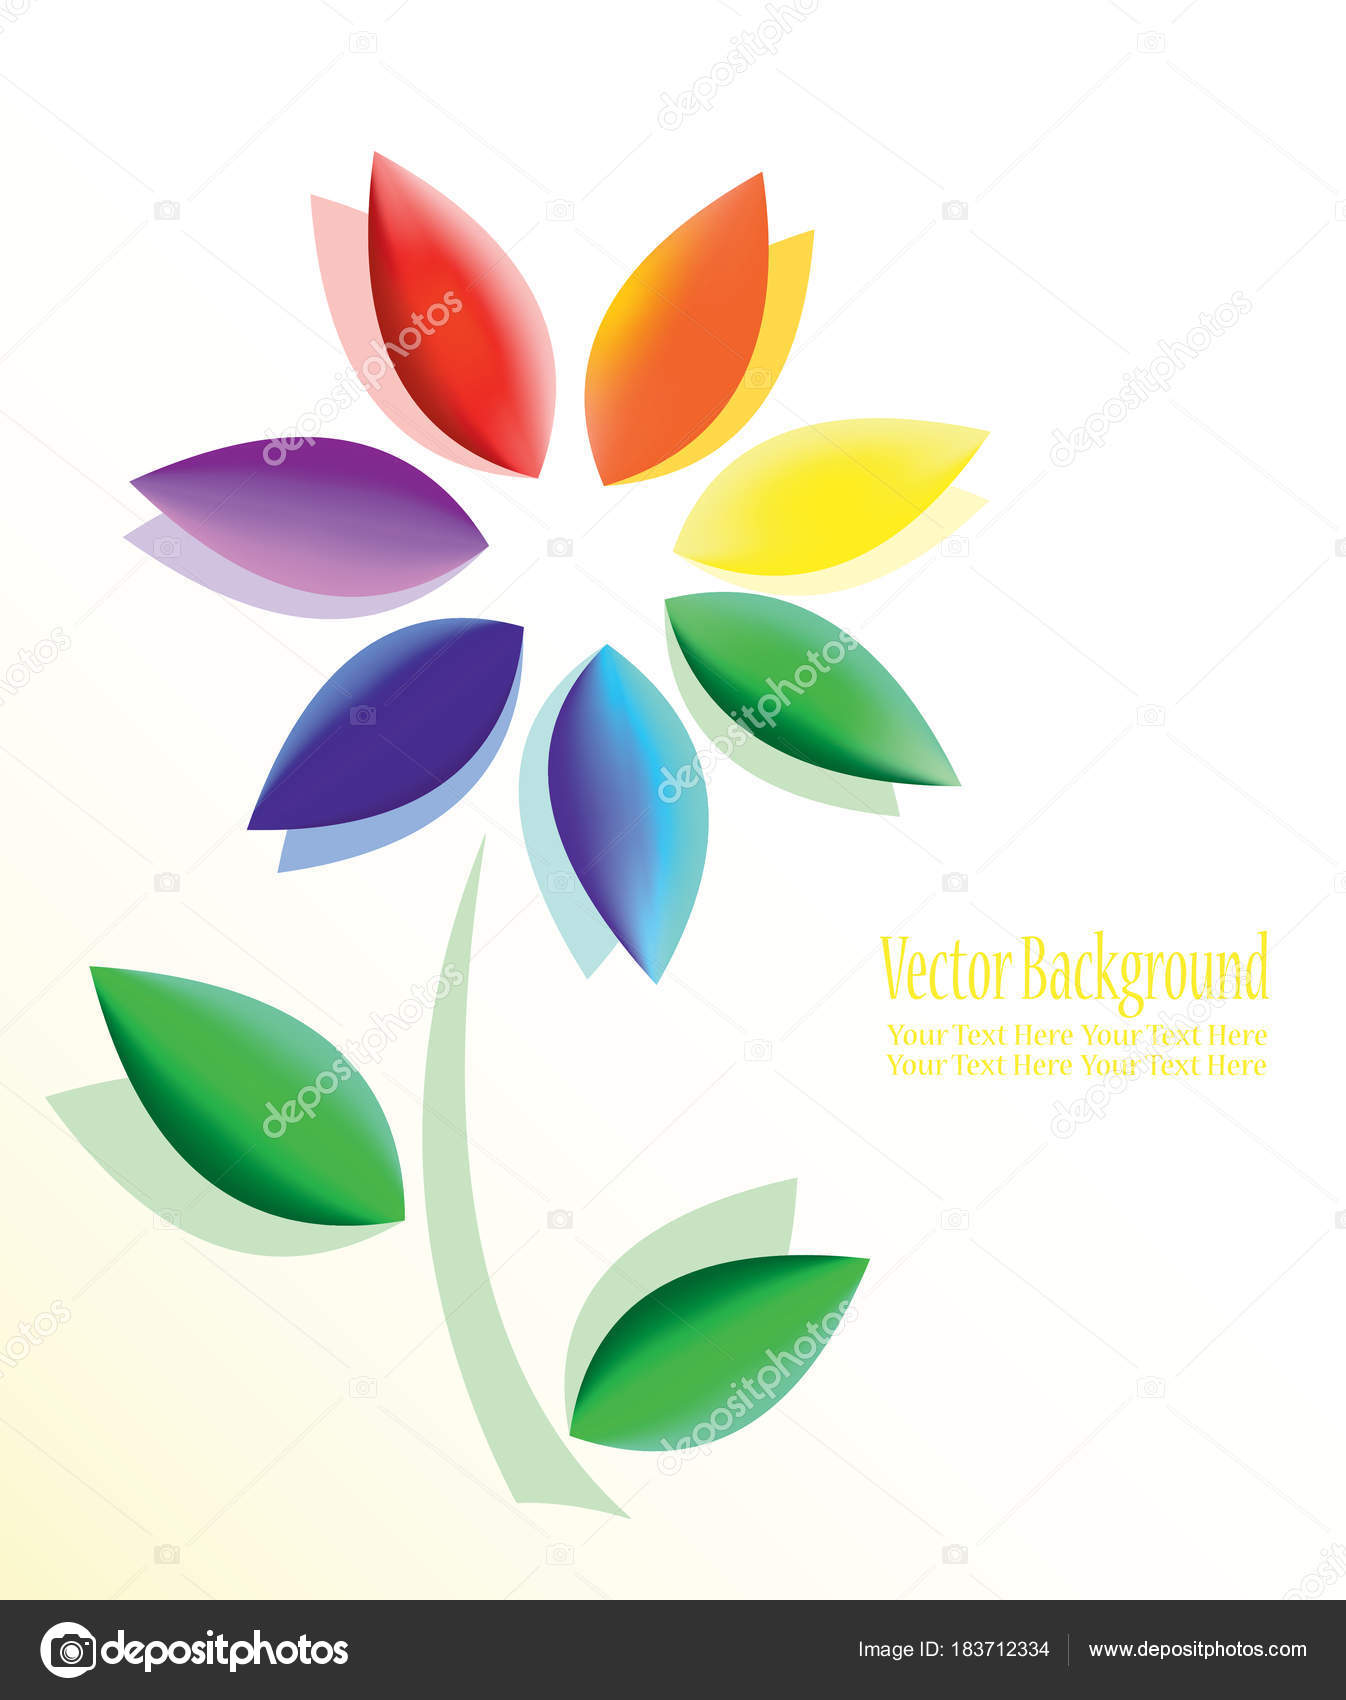 Abstract colorful flowers a symbol of purity peace love and a symbol of harmony purity peace love and happiness vector by sams57 biocorpaavc Image collections